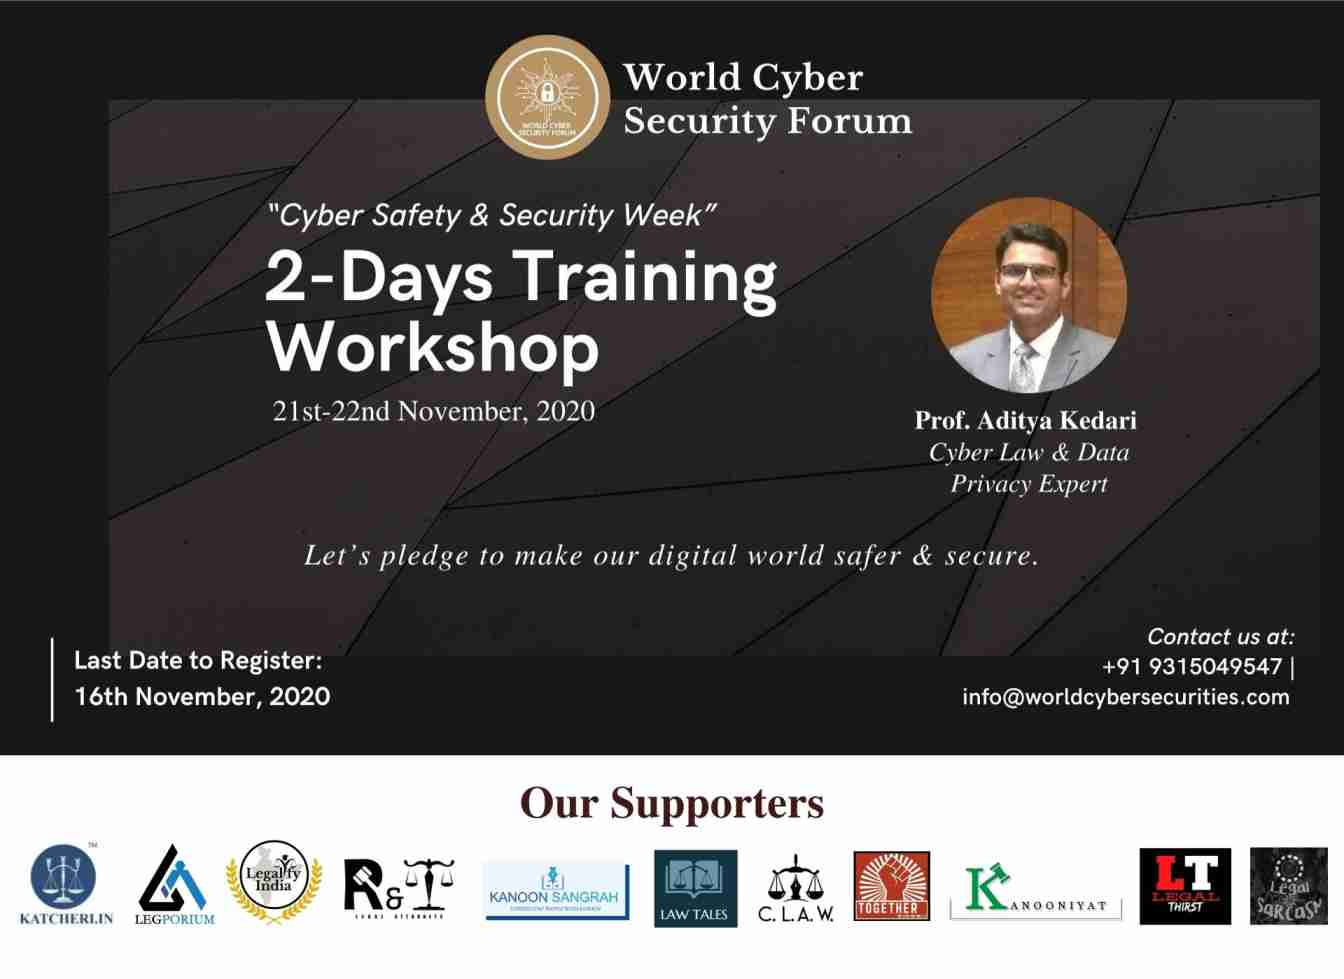 """World Cyber Security Forum (WCSF)'s Two Days Training Workshop on """"Cyber Safety & Security Week"""""""